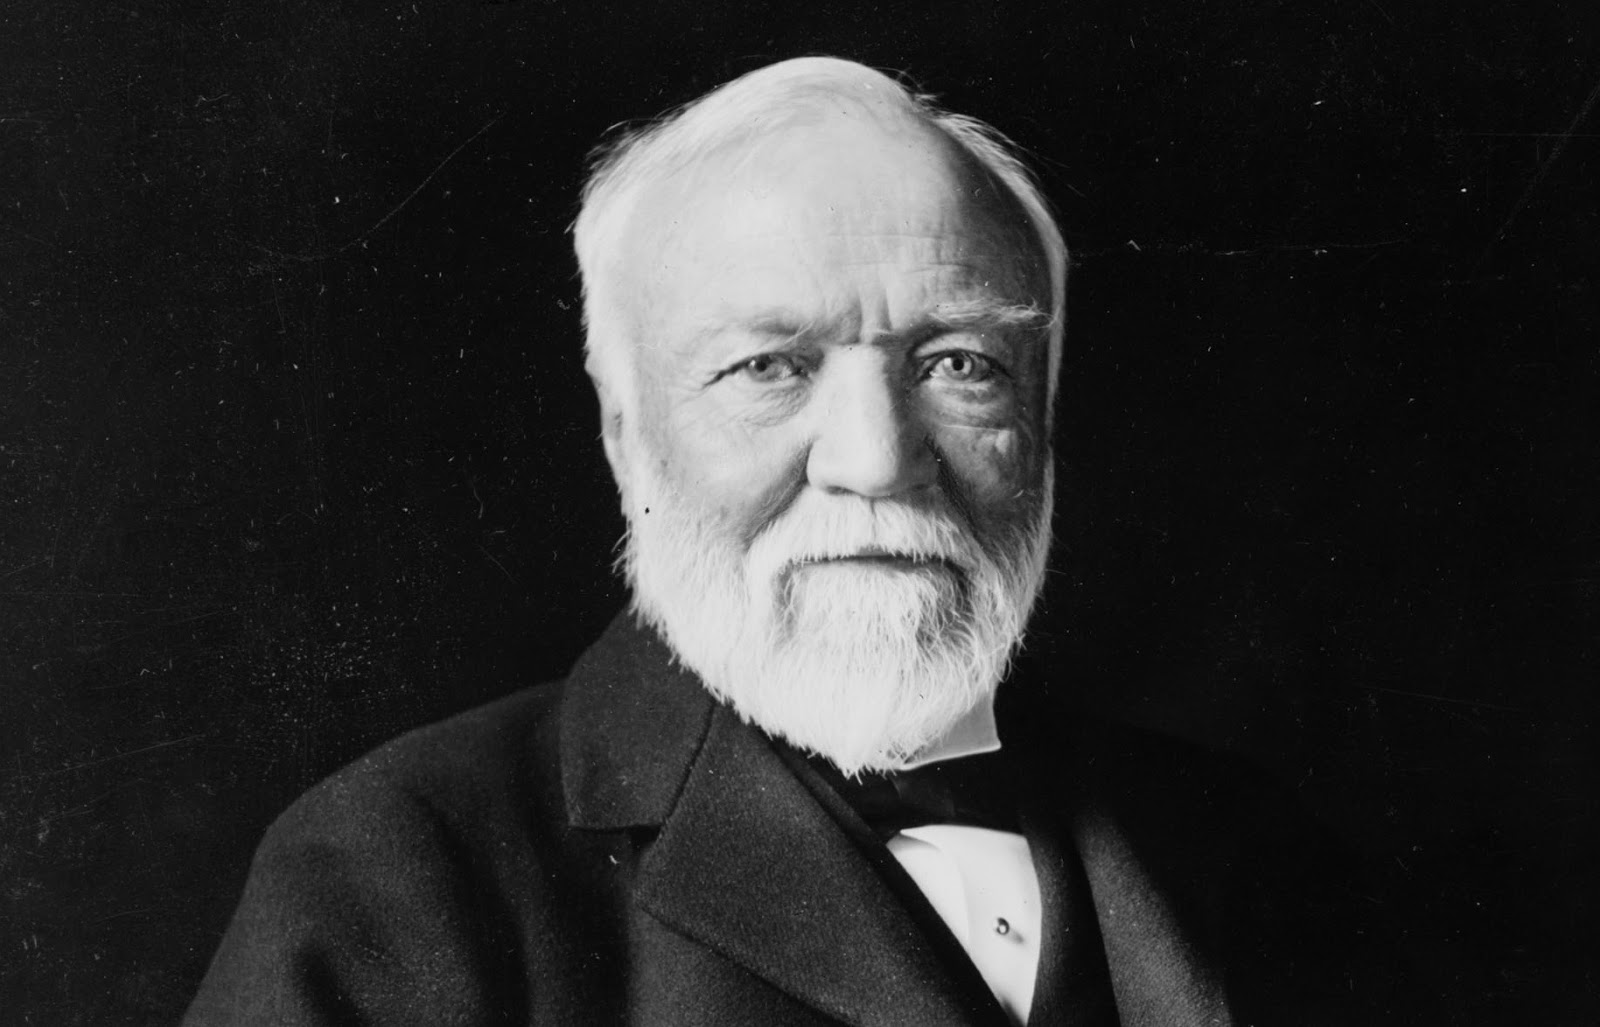 andrew carnegie wealth essay the gospel of wealth and other timely essays raptis rare books the gospel of wealth and other timely essays raptis rare books middot andrew carnegie